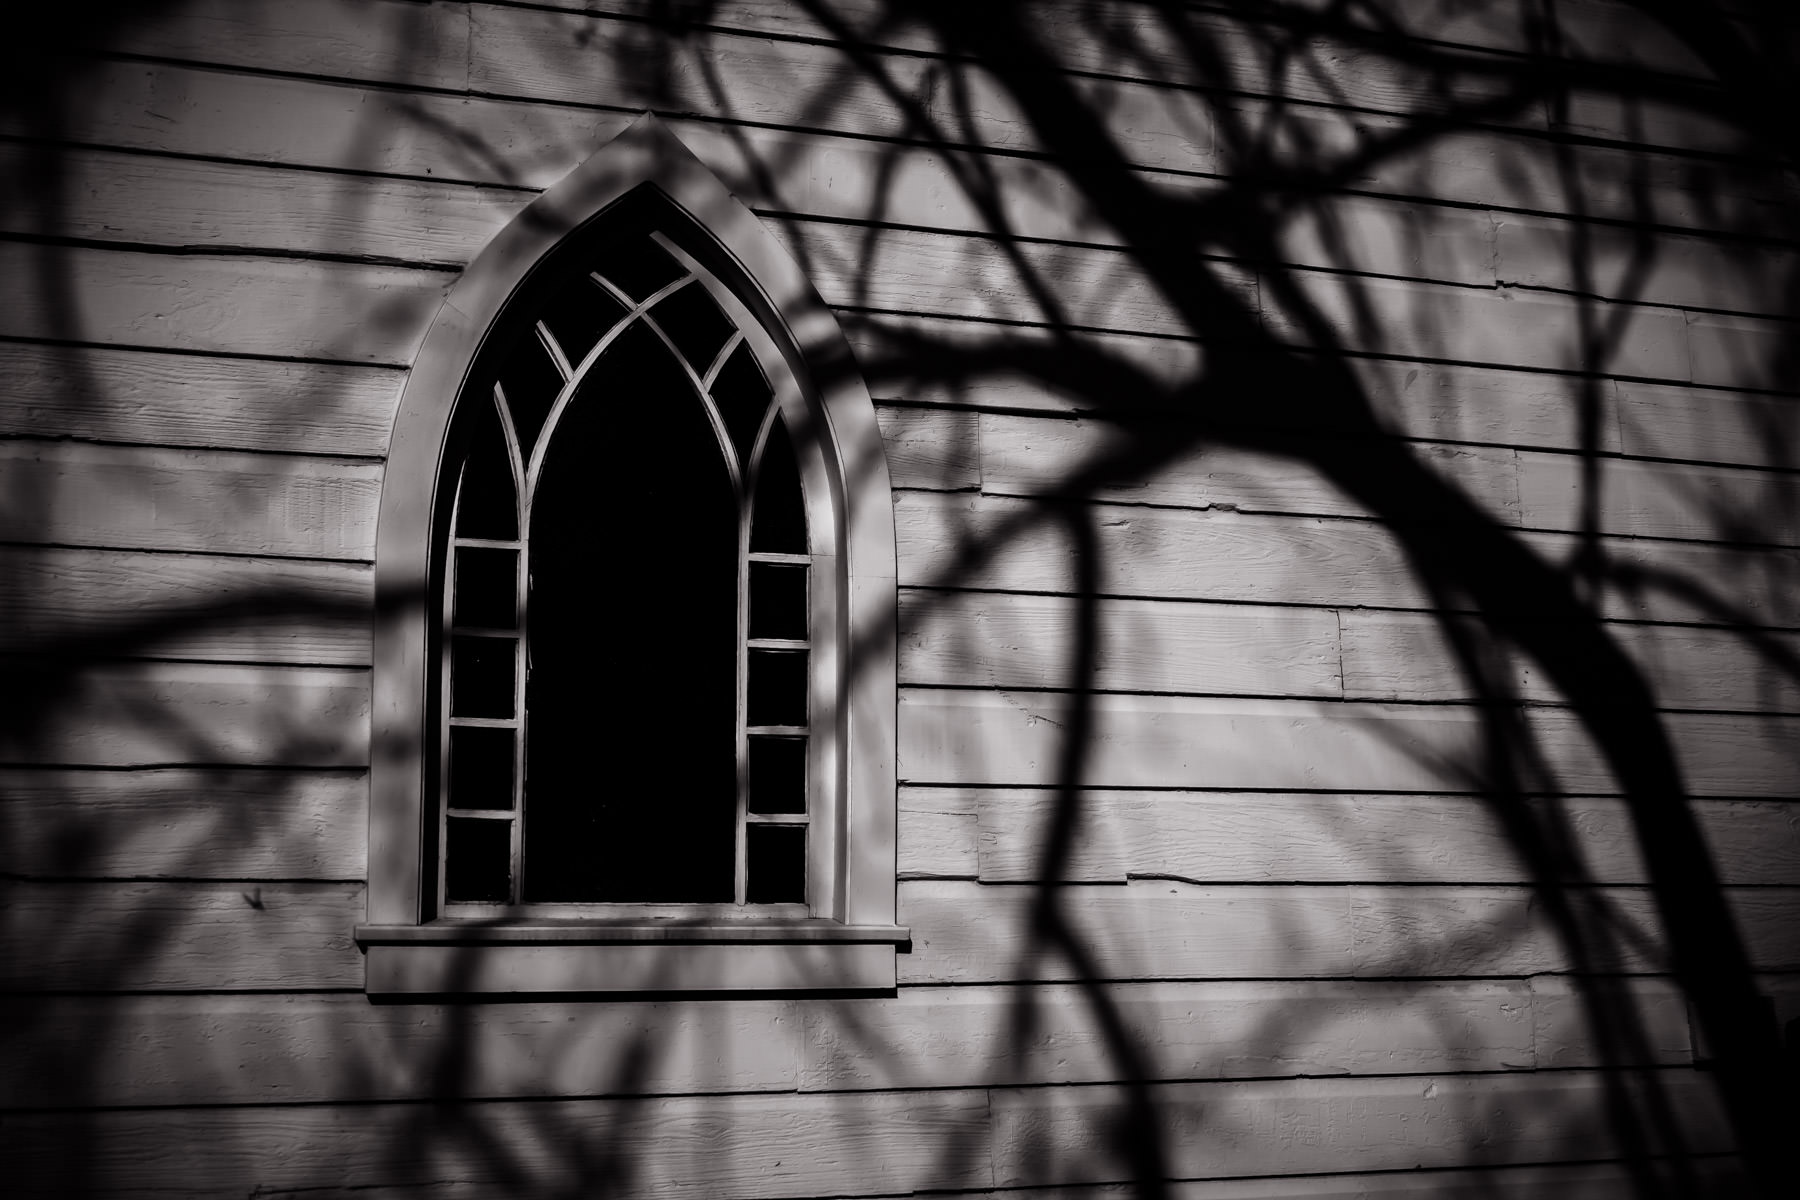 Shadows of tree branches fall over a window of an abandoned church somewhere near Dallas.